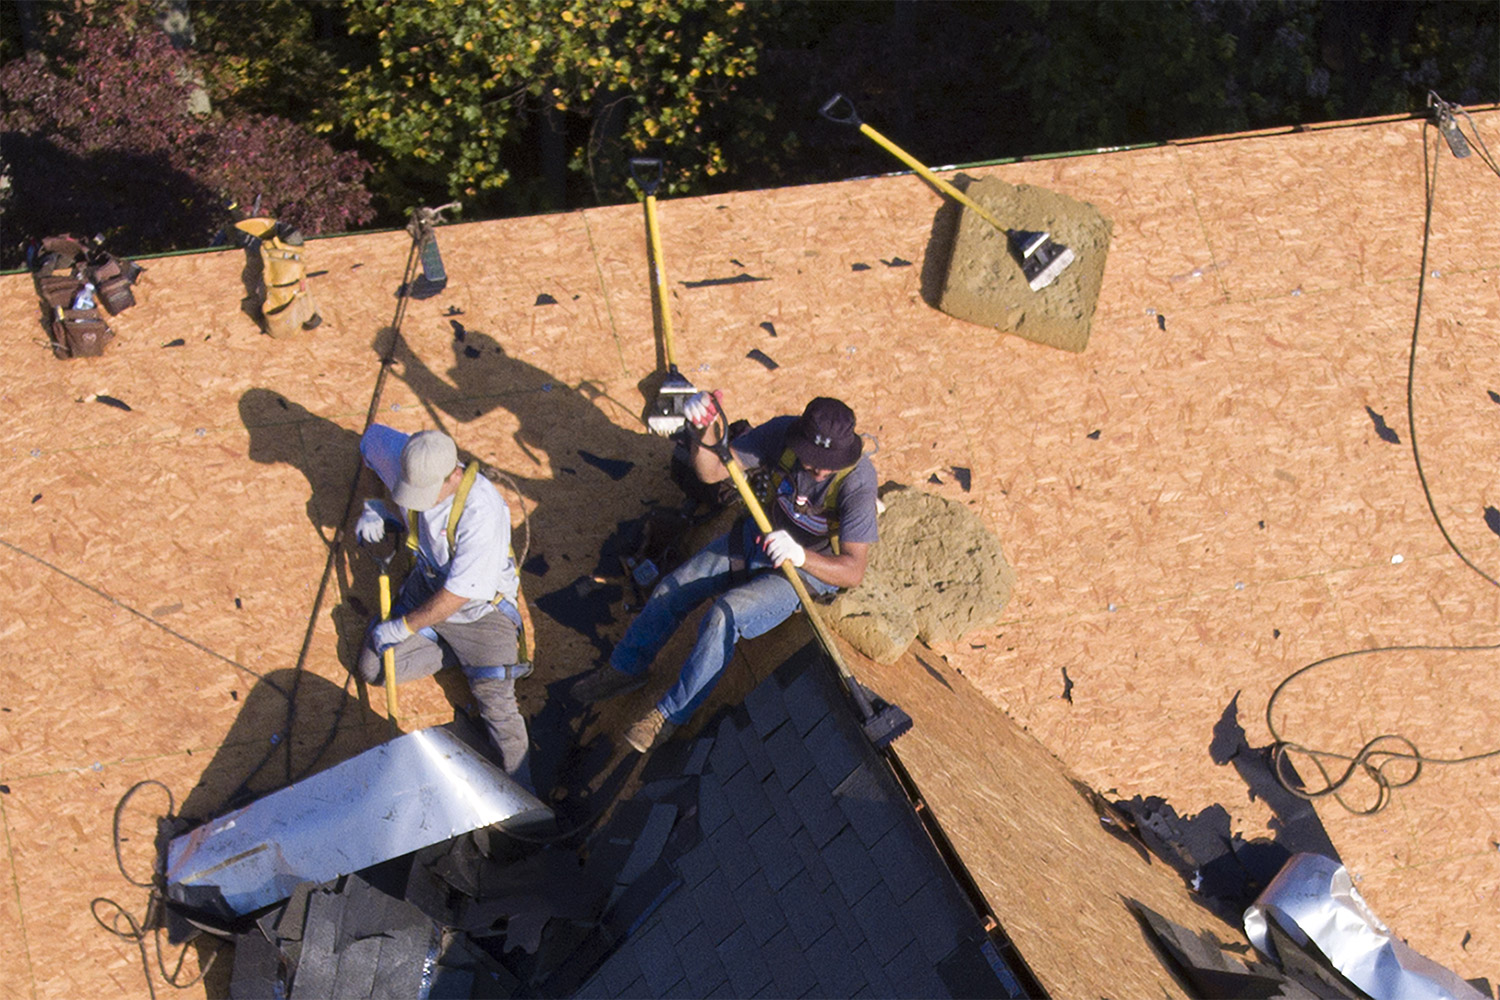 roofers using roof-stripping shovel tool to tear shingles off roof